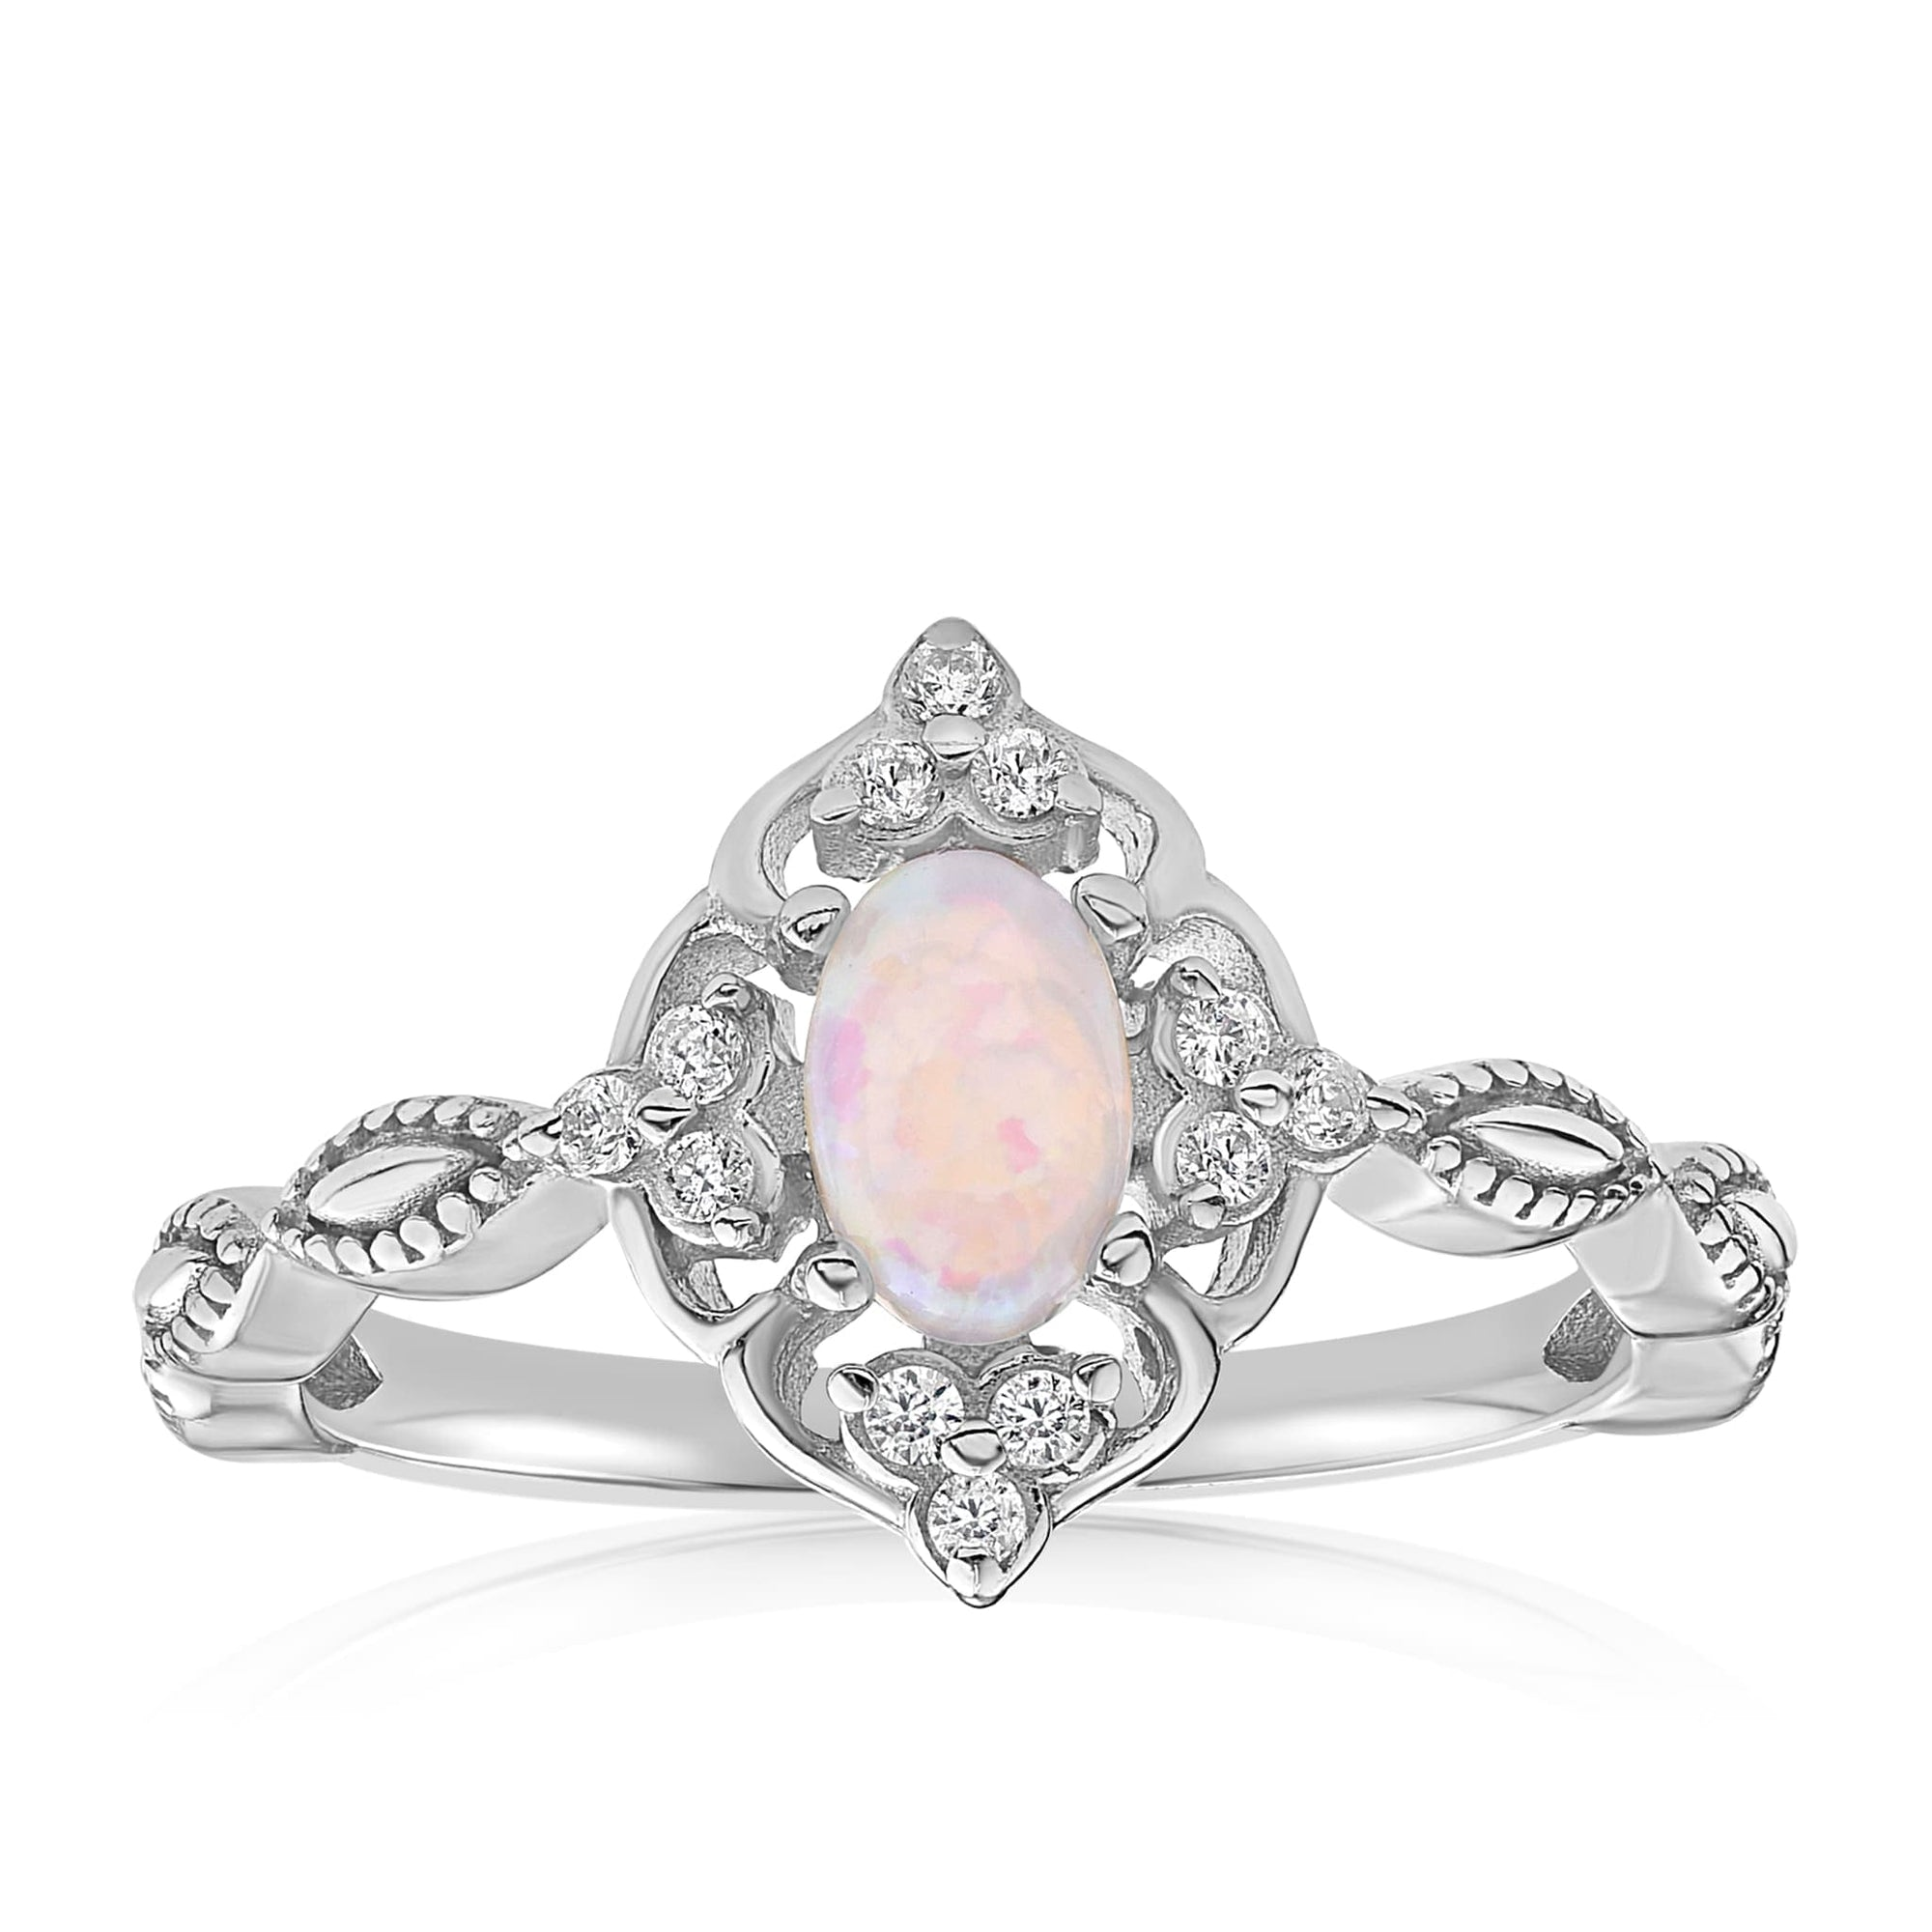 Blue Opal Carved Ring - Front View Facing Up - 925 Sterling Silver